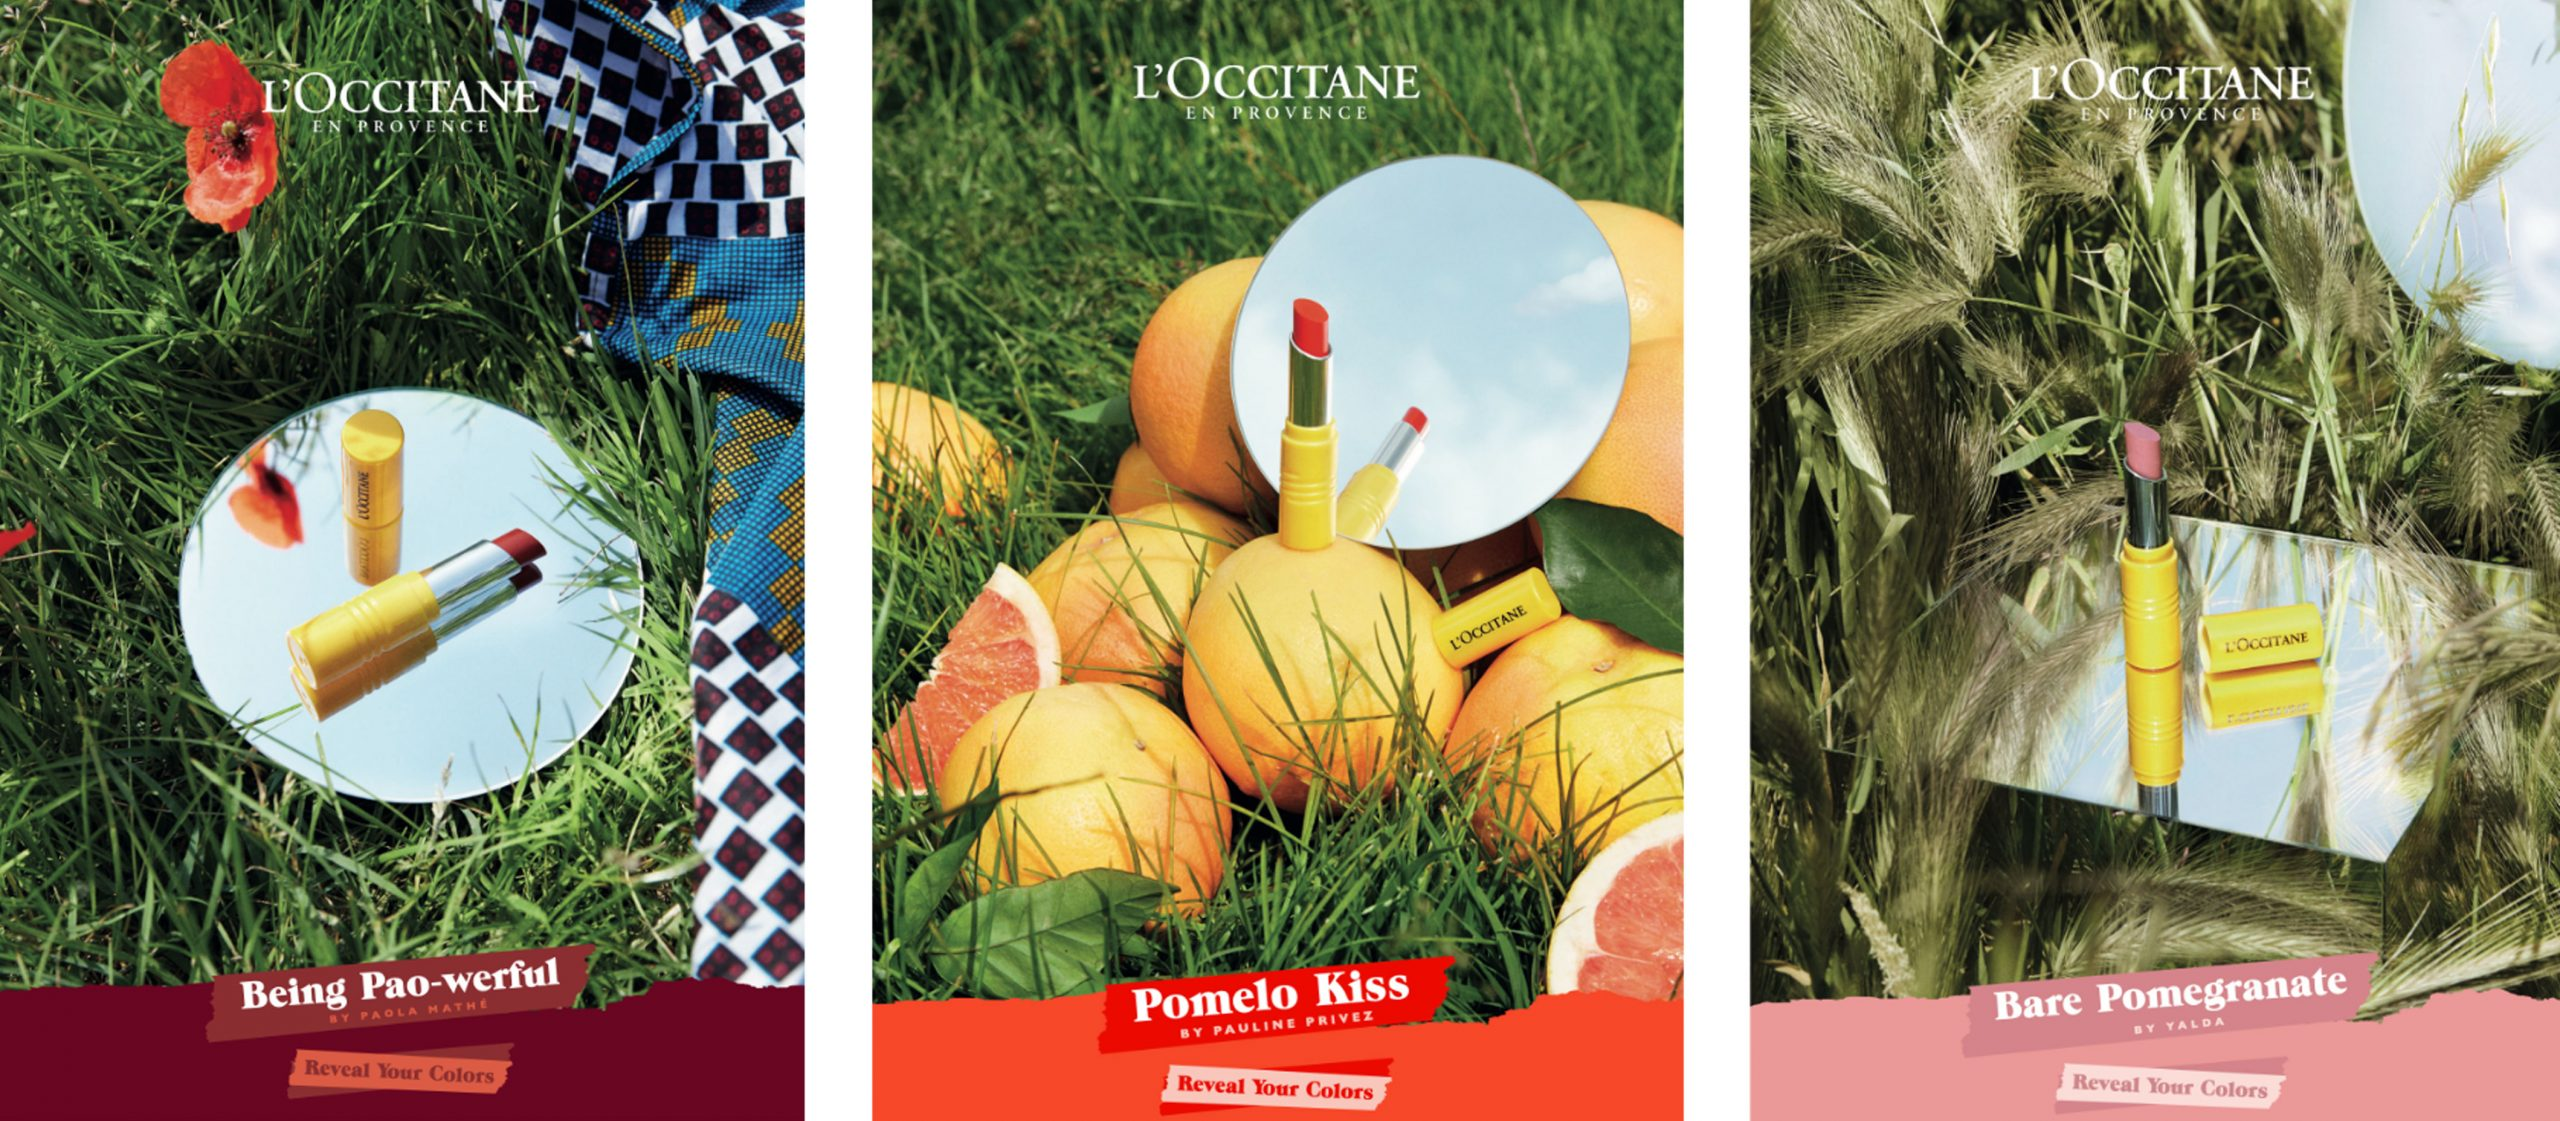 L'Occitane reveal your colors campagne instagram